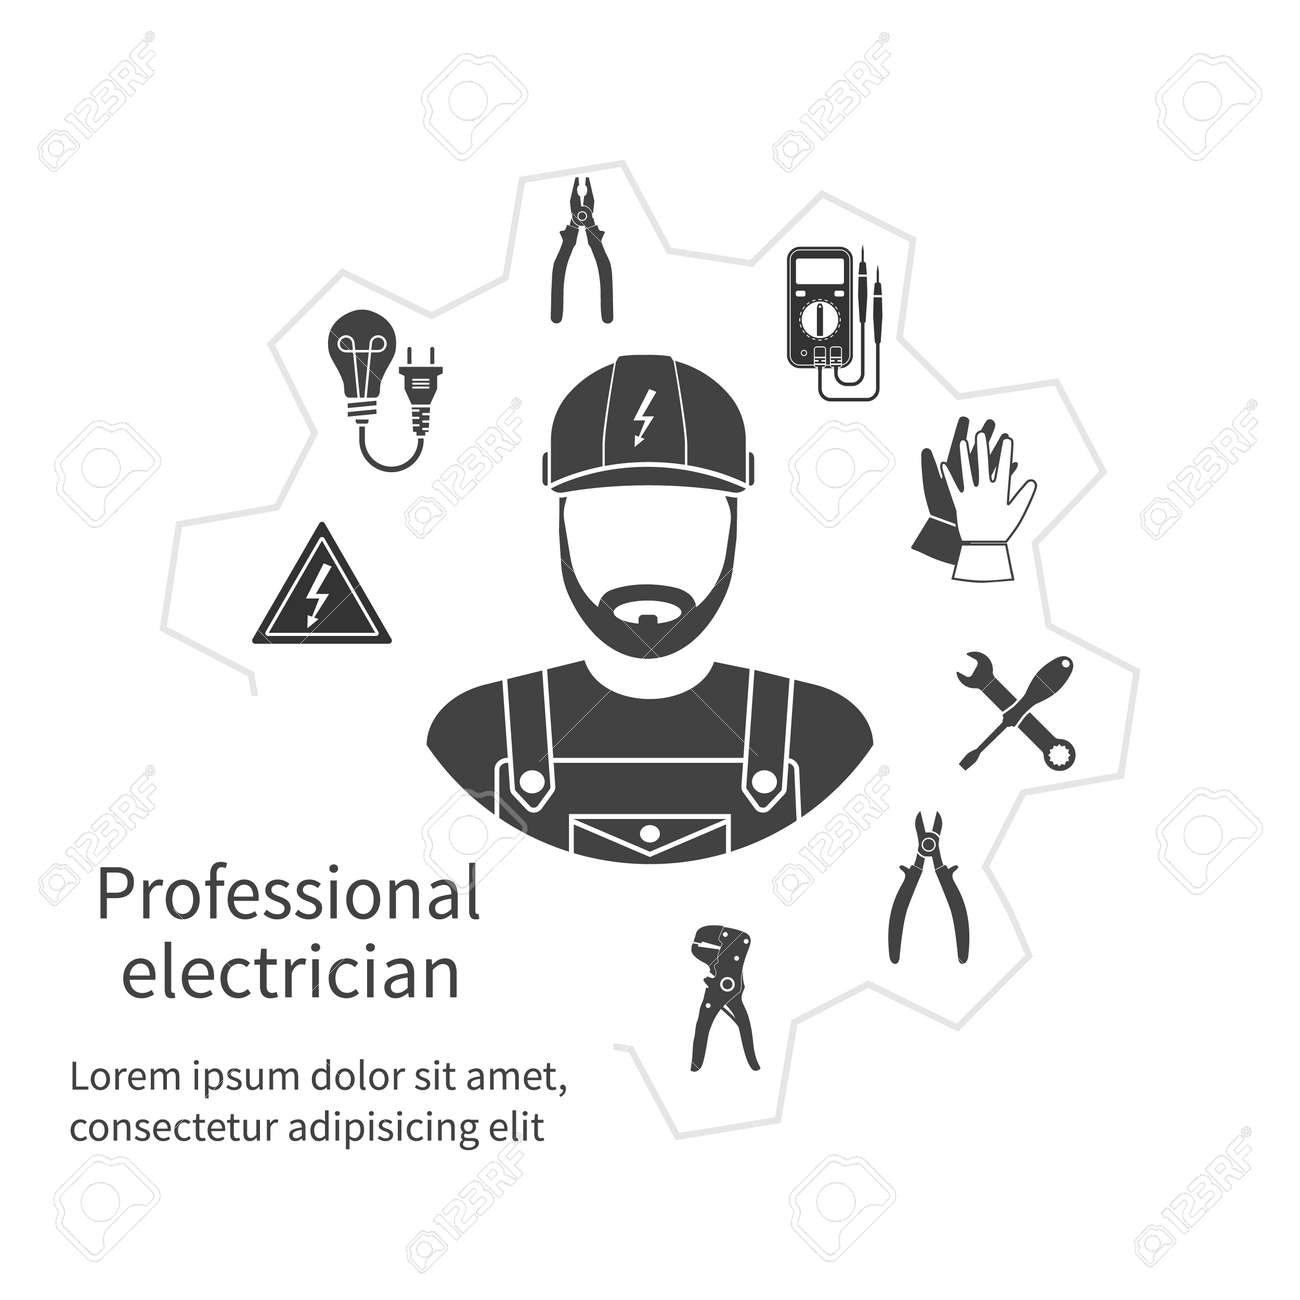 Concept Of Profession Electrician Repair And Maintenance Electricity Service Electricians Tools